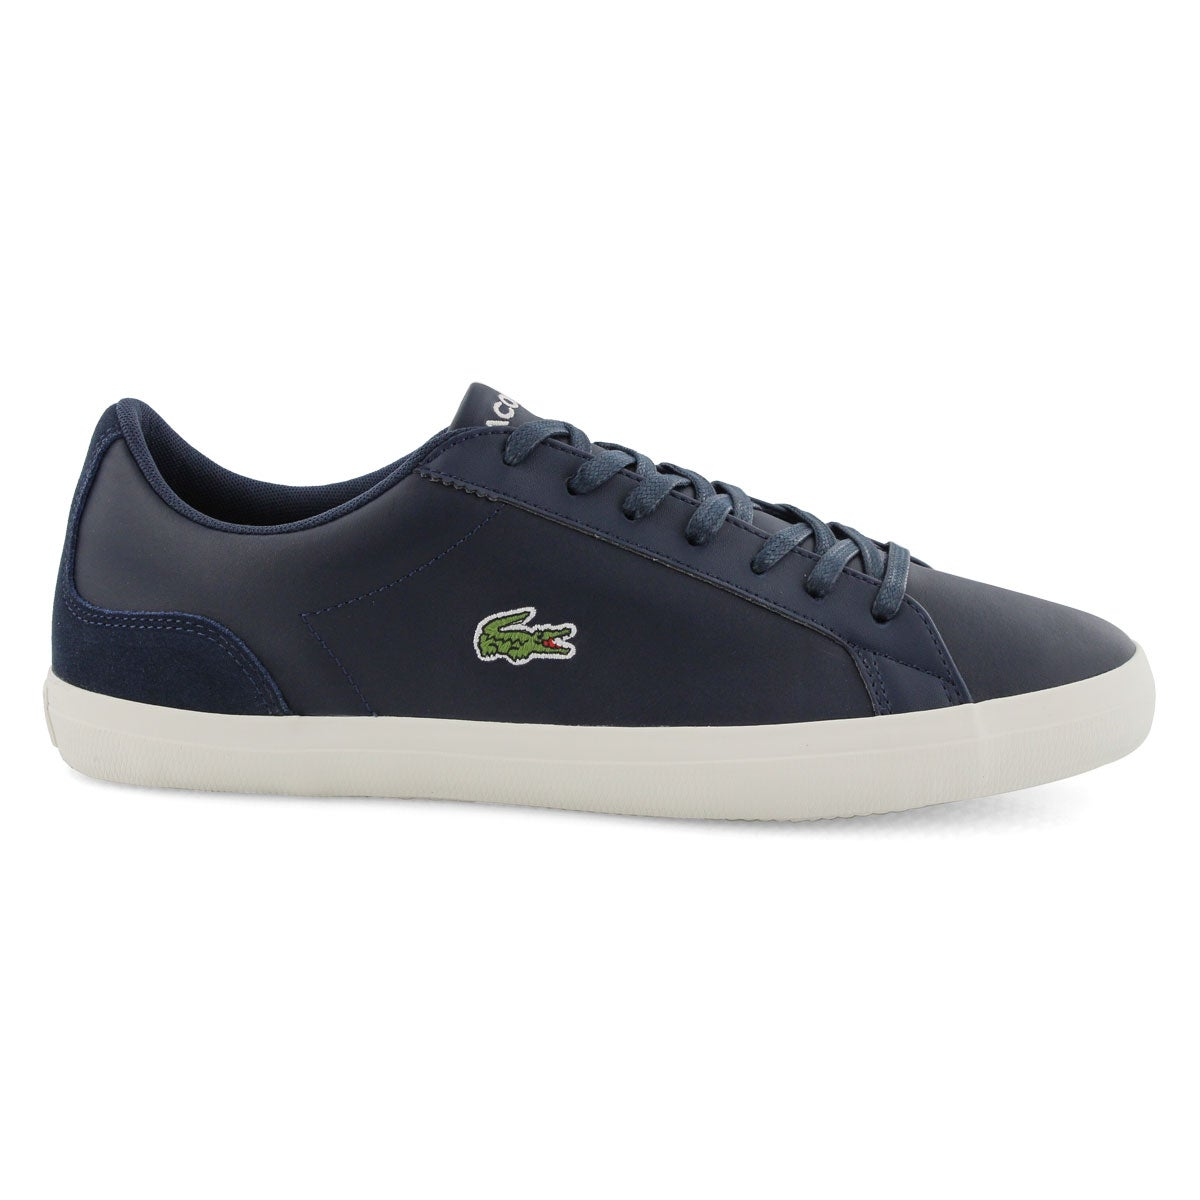 Men's Lerond 319 1 Lace Up Sneaker - Navy/White